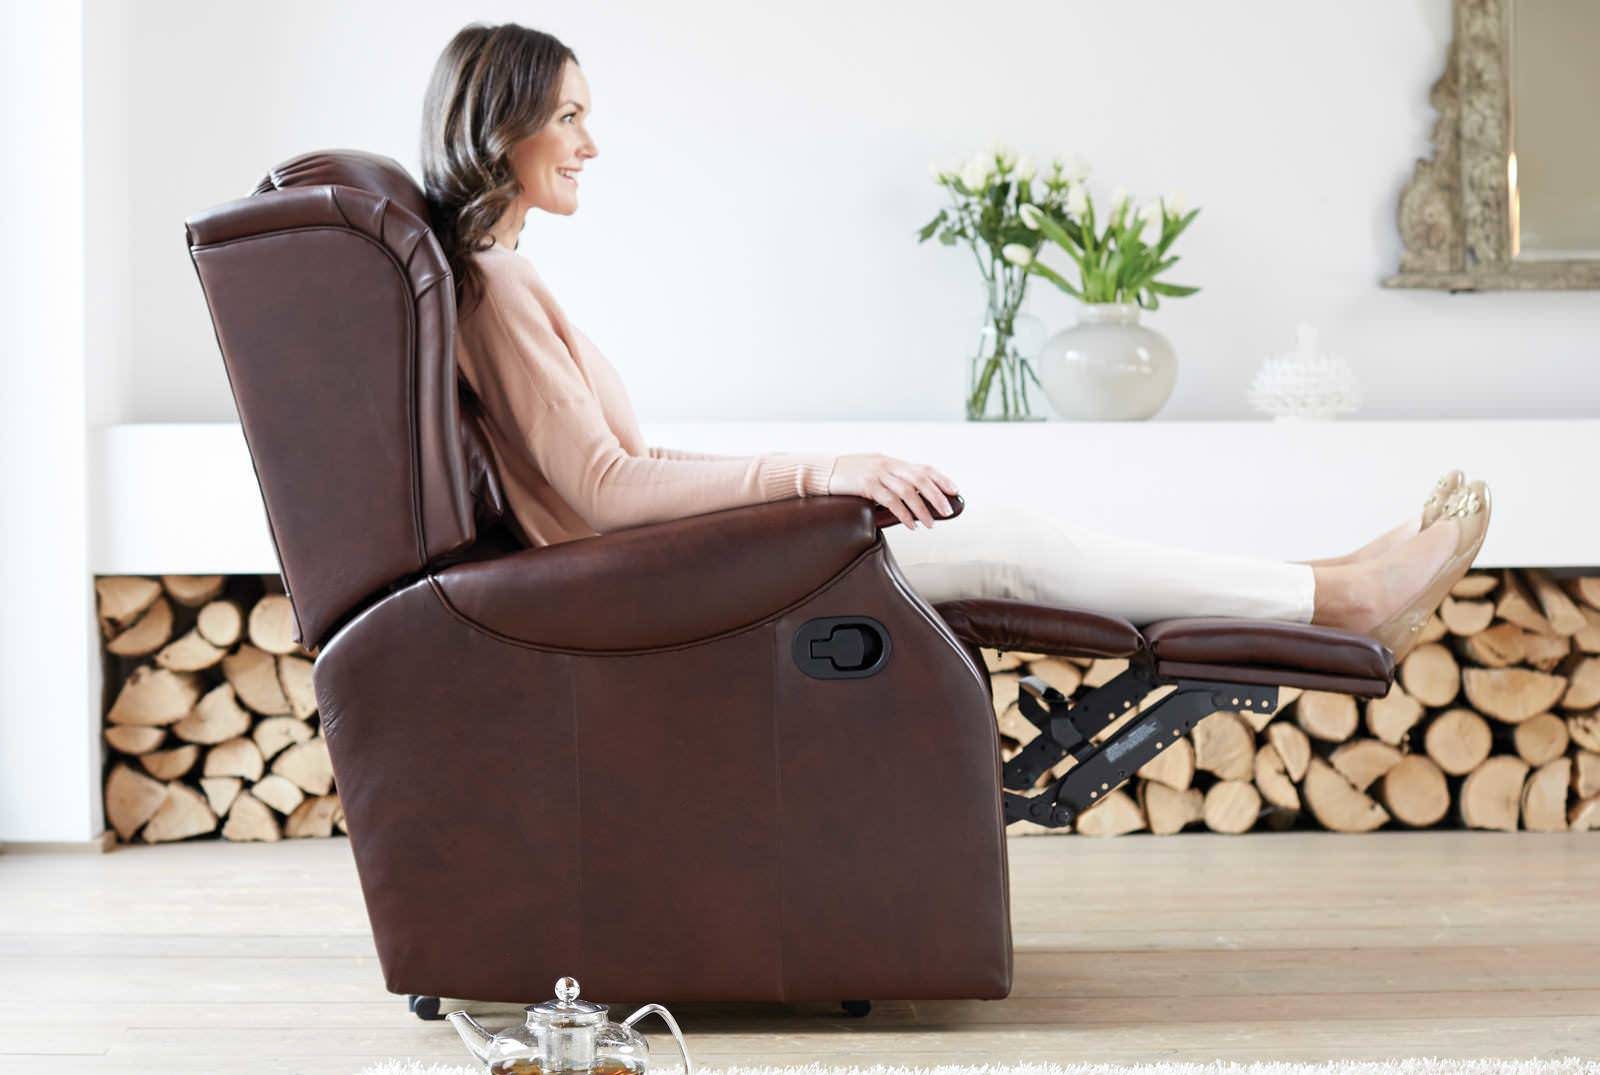 Linton Catch Recliner in New England Brown